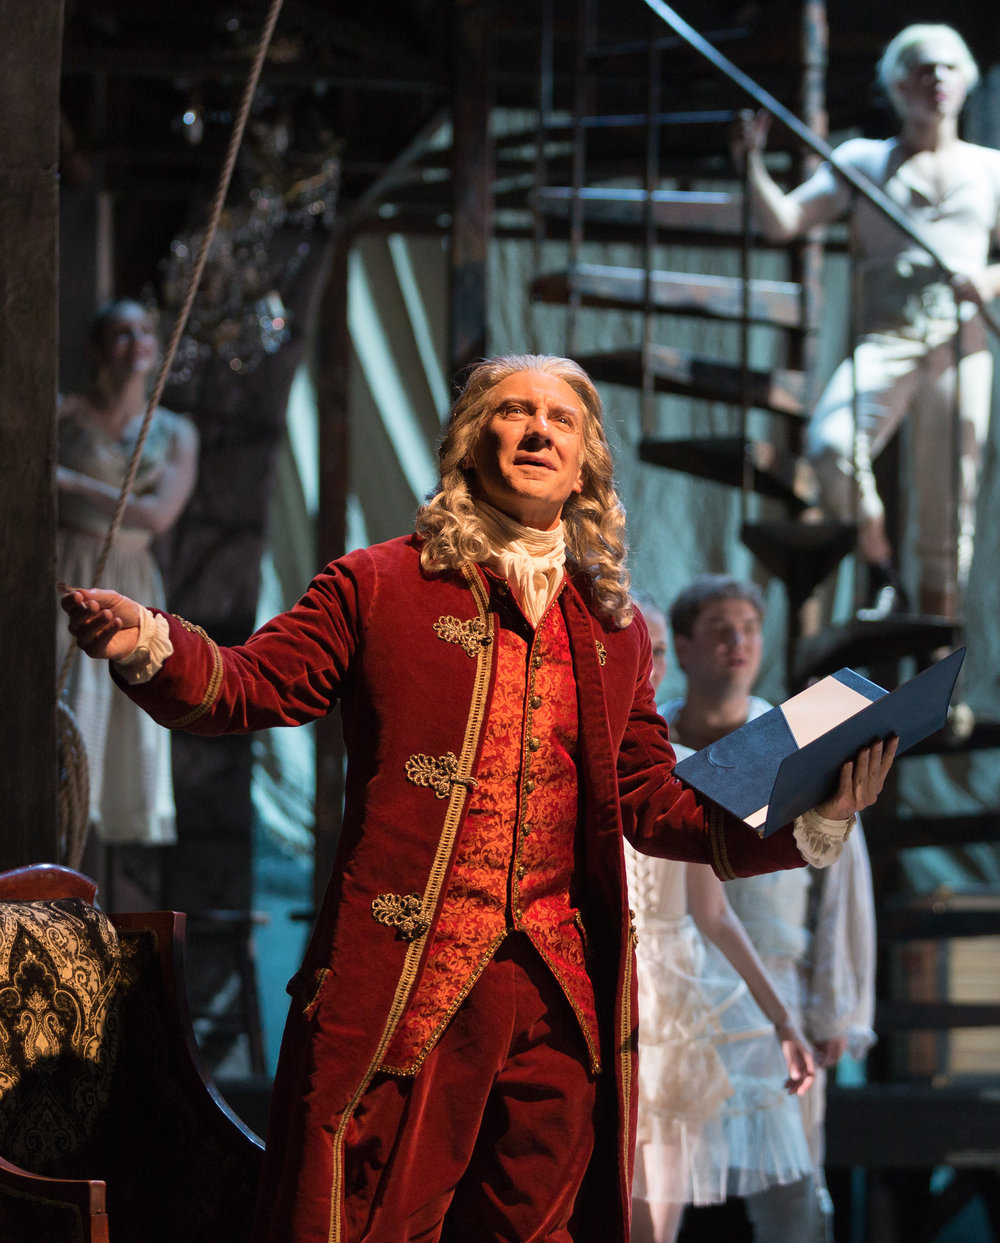 Candide 2 - photo by Karlie Cadel for The Glimmerglass Festival.jpg